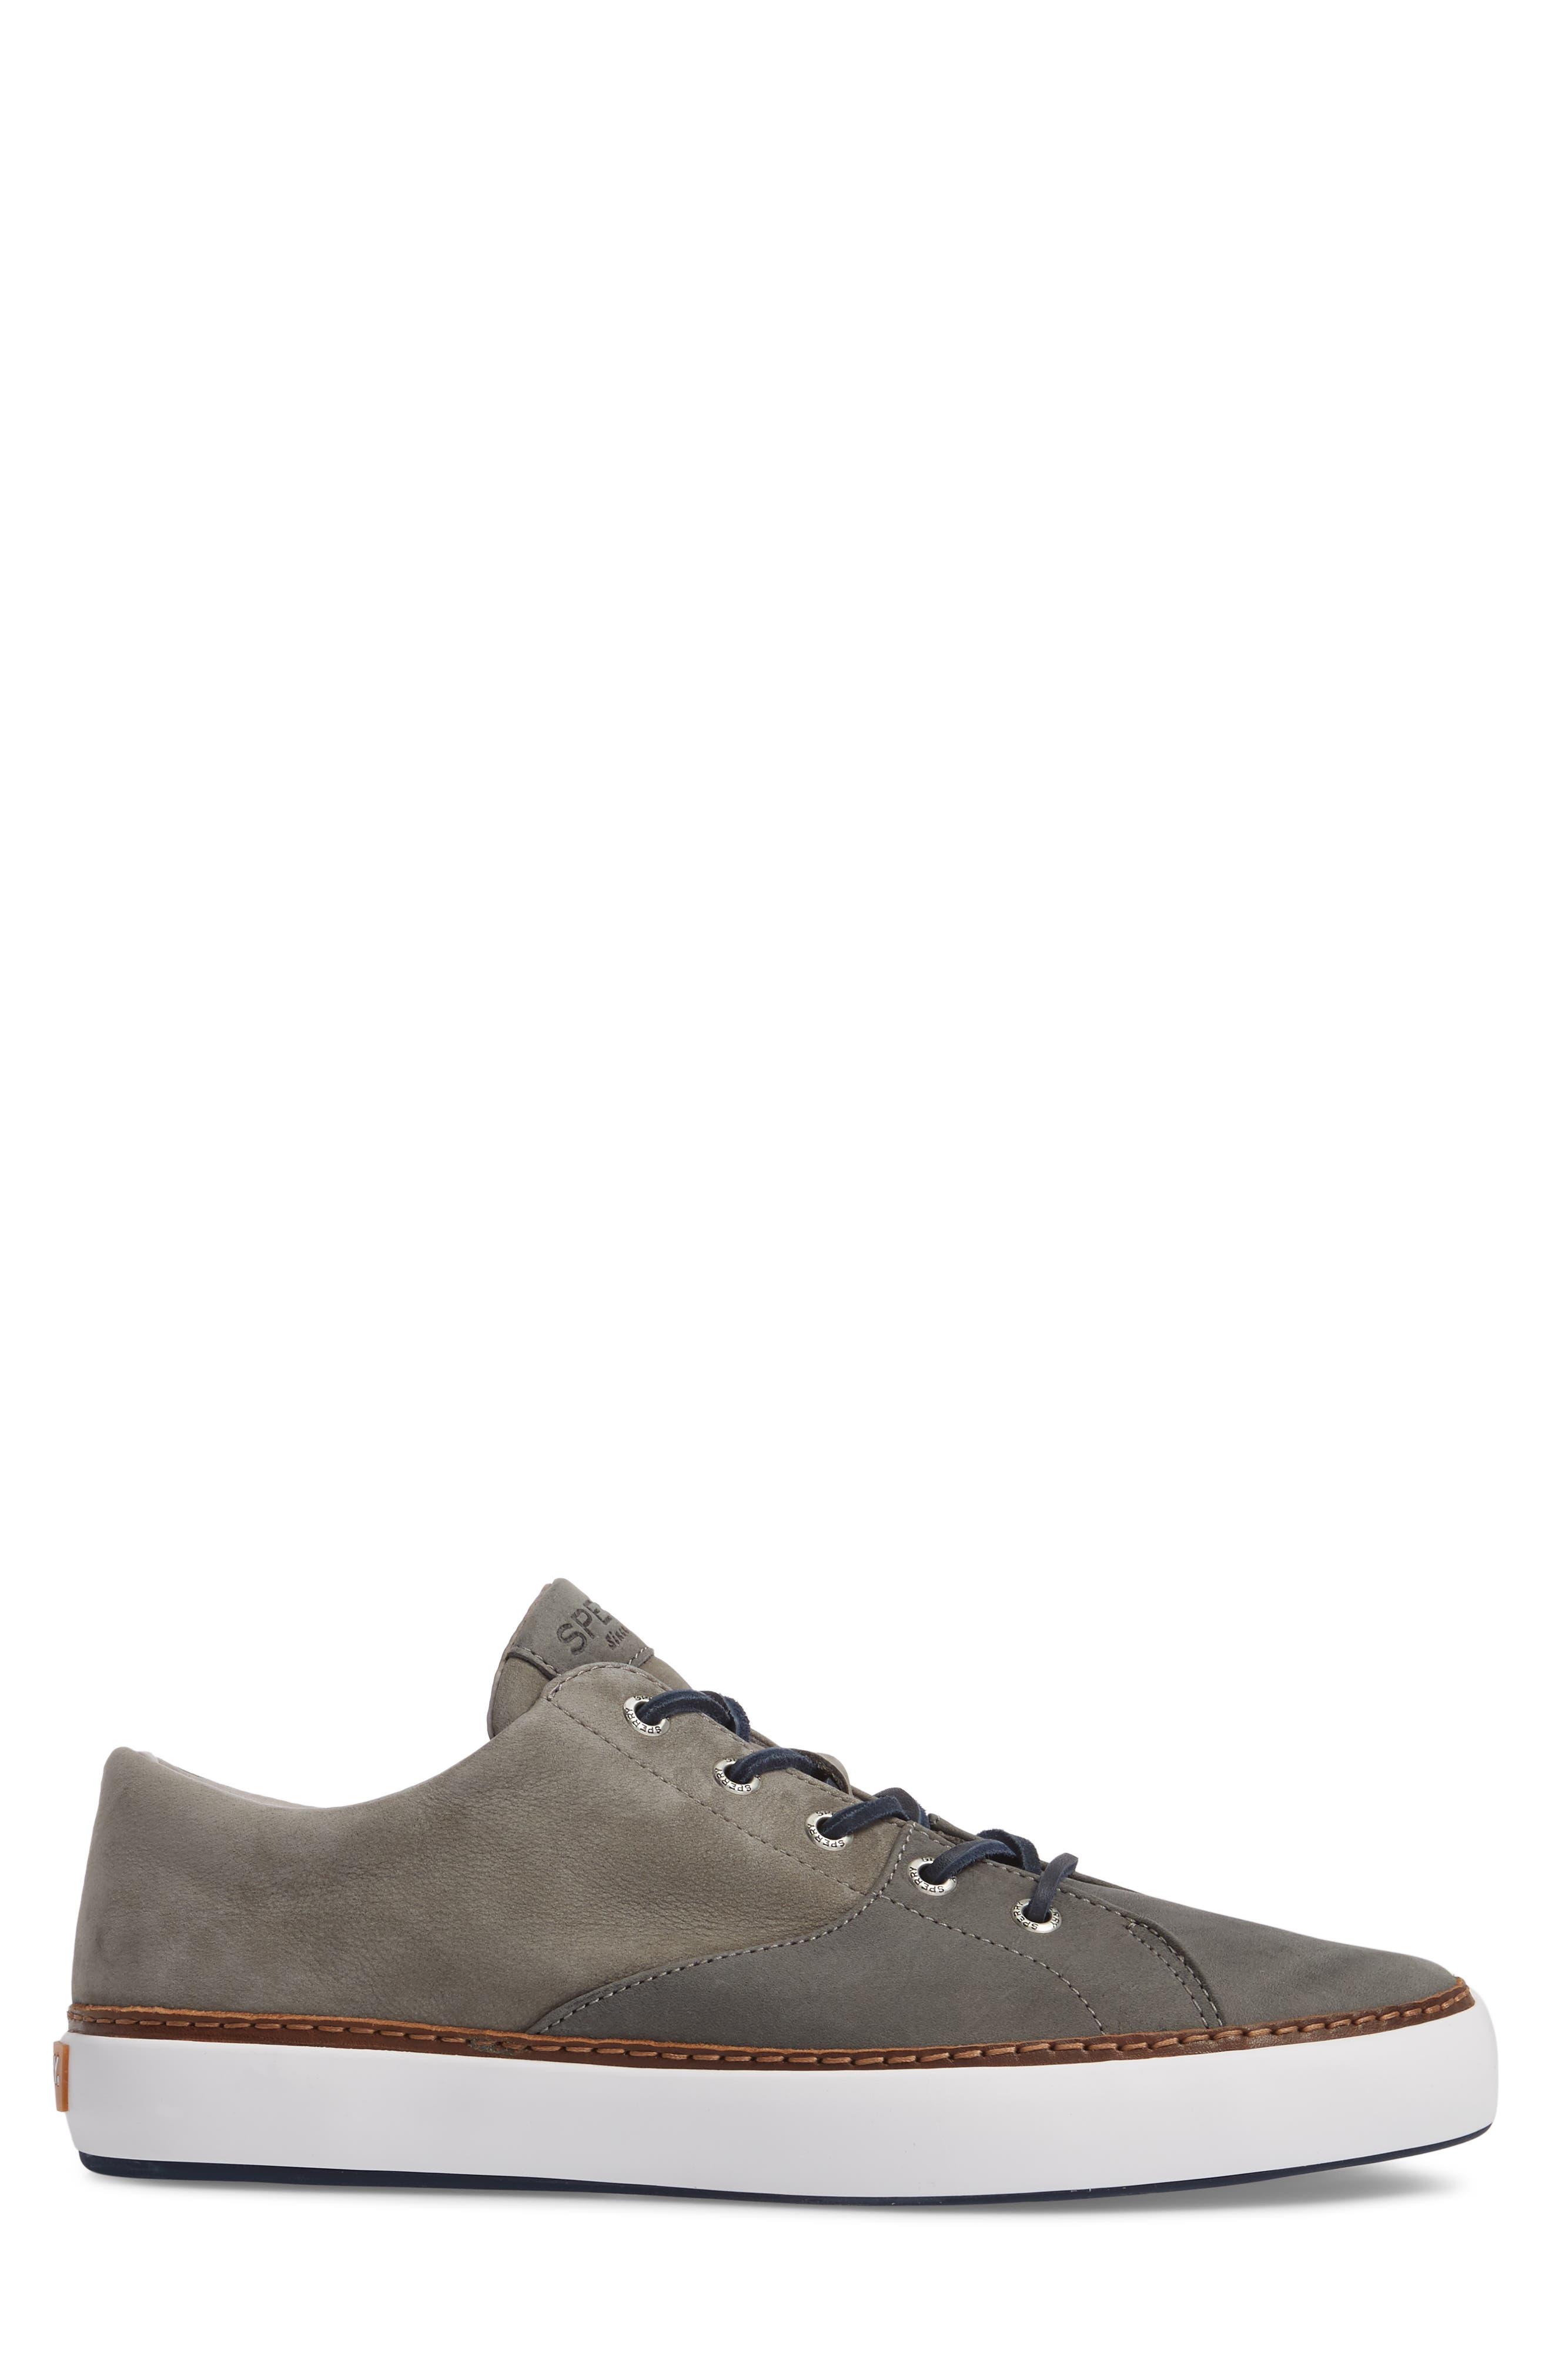 Gold Cup Haven Sneaker,                             Alternate thumbnail 3, color,                             Grey Leather